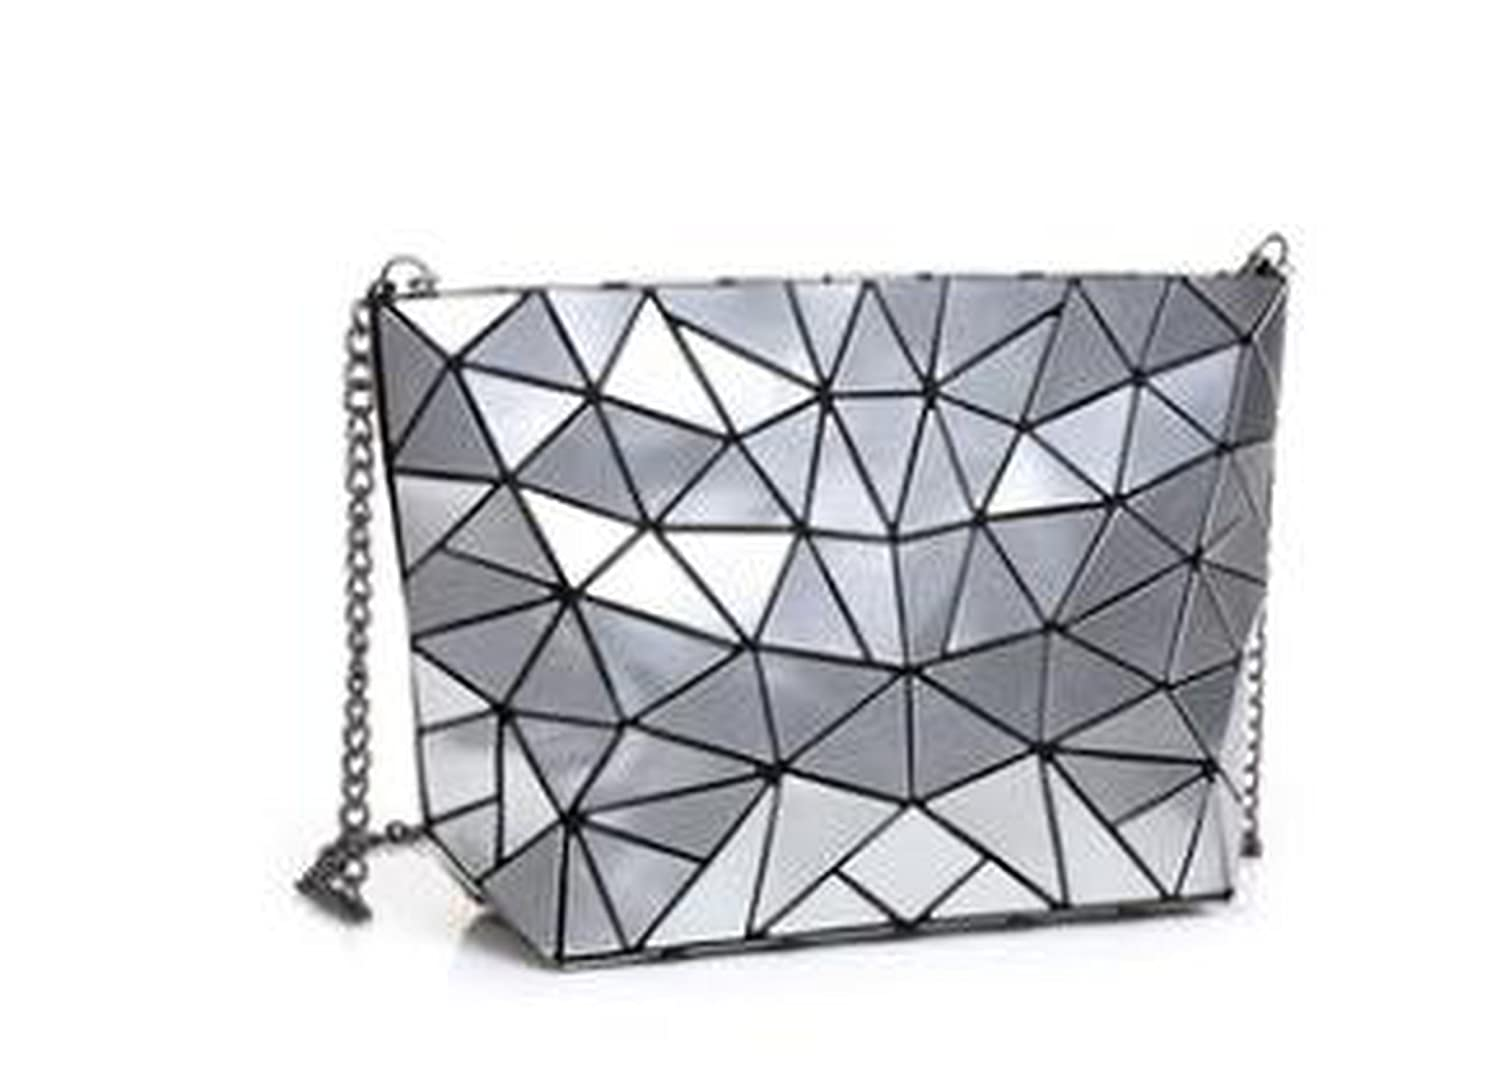 Amazon.com  Matte Designer Women Evening Bag Shoulder Bags Girls Bao Bao Flap  Handbag Fashion Geometric Casual Clutch Messenger Bag PP-1148 6d517d801b94